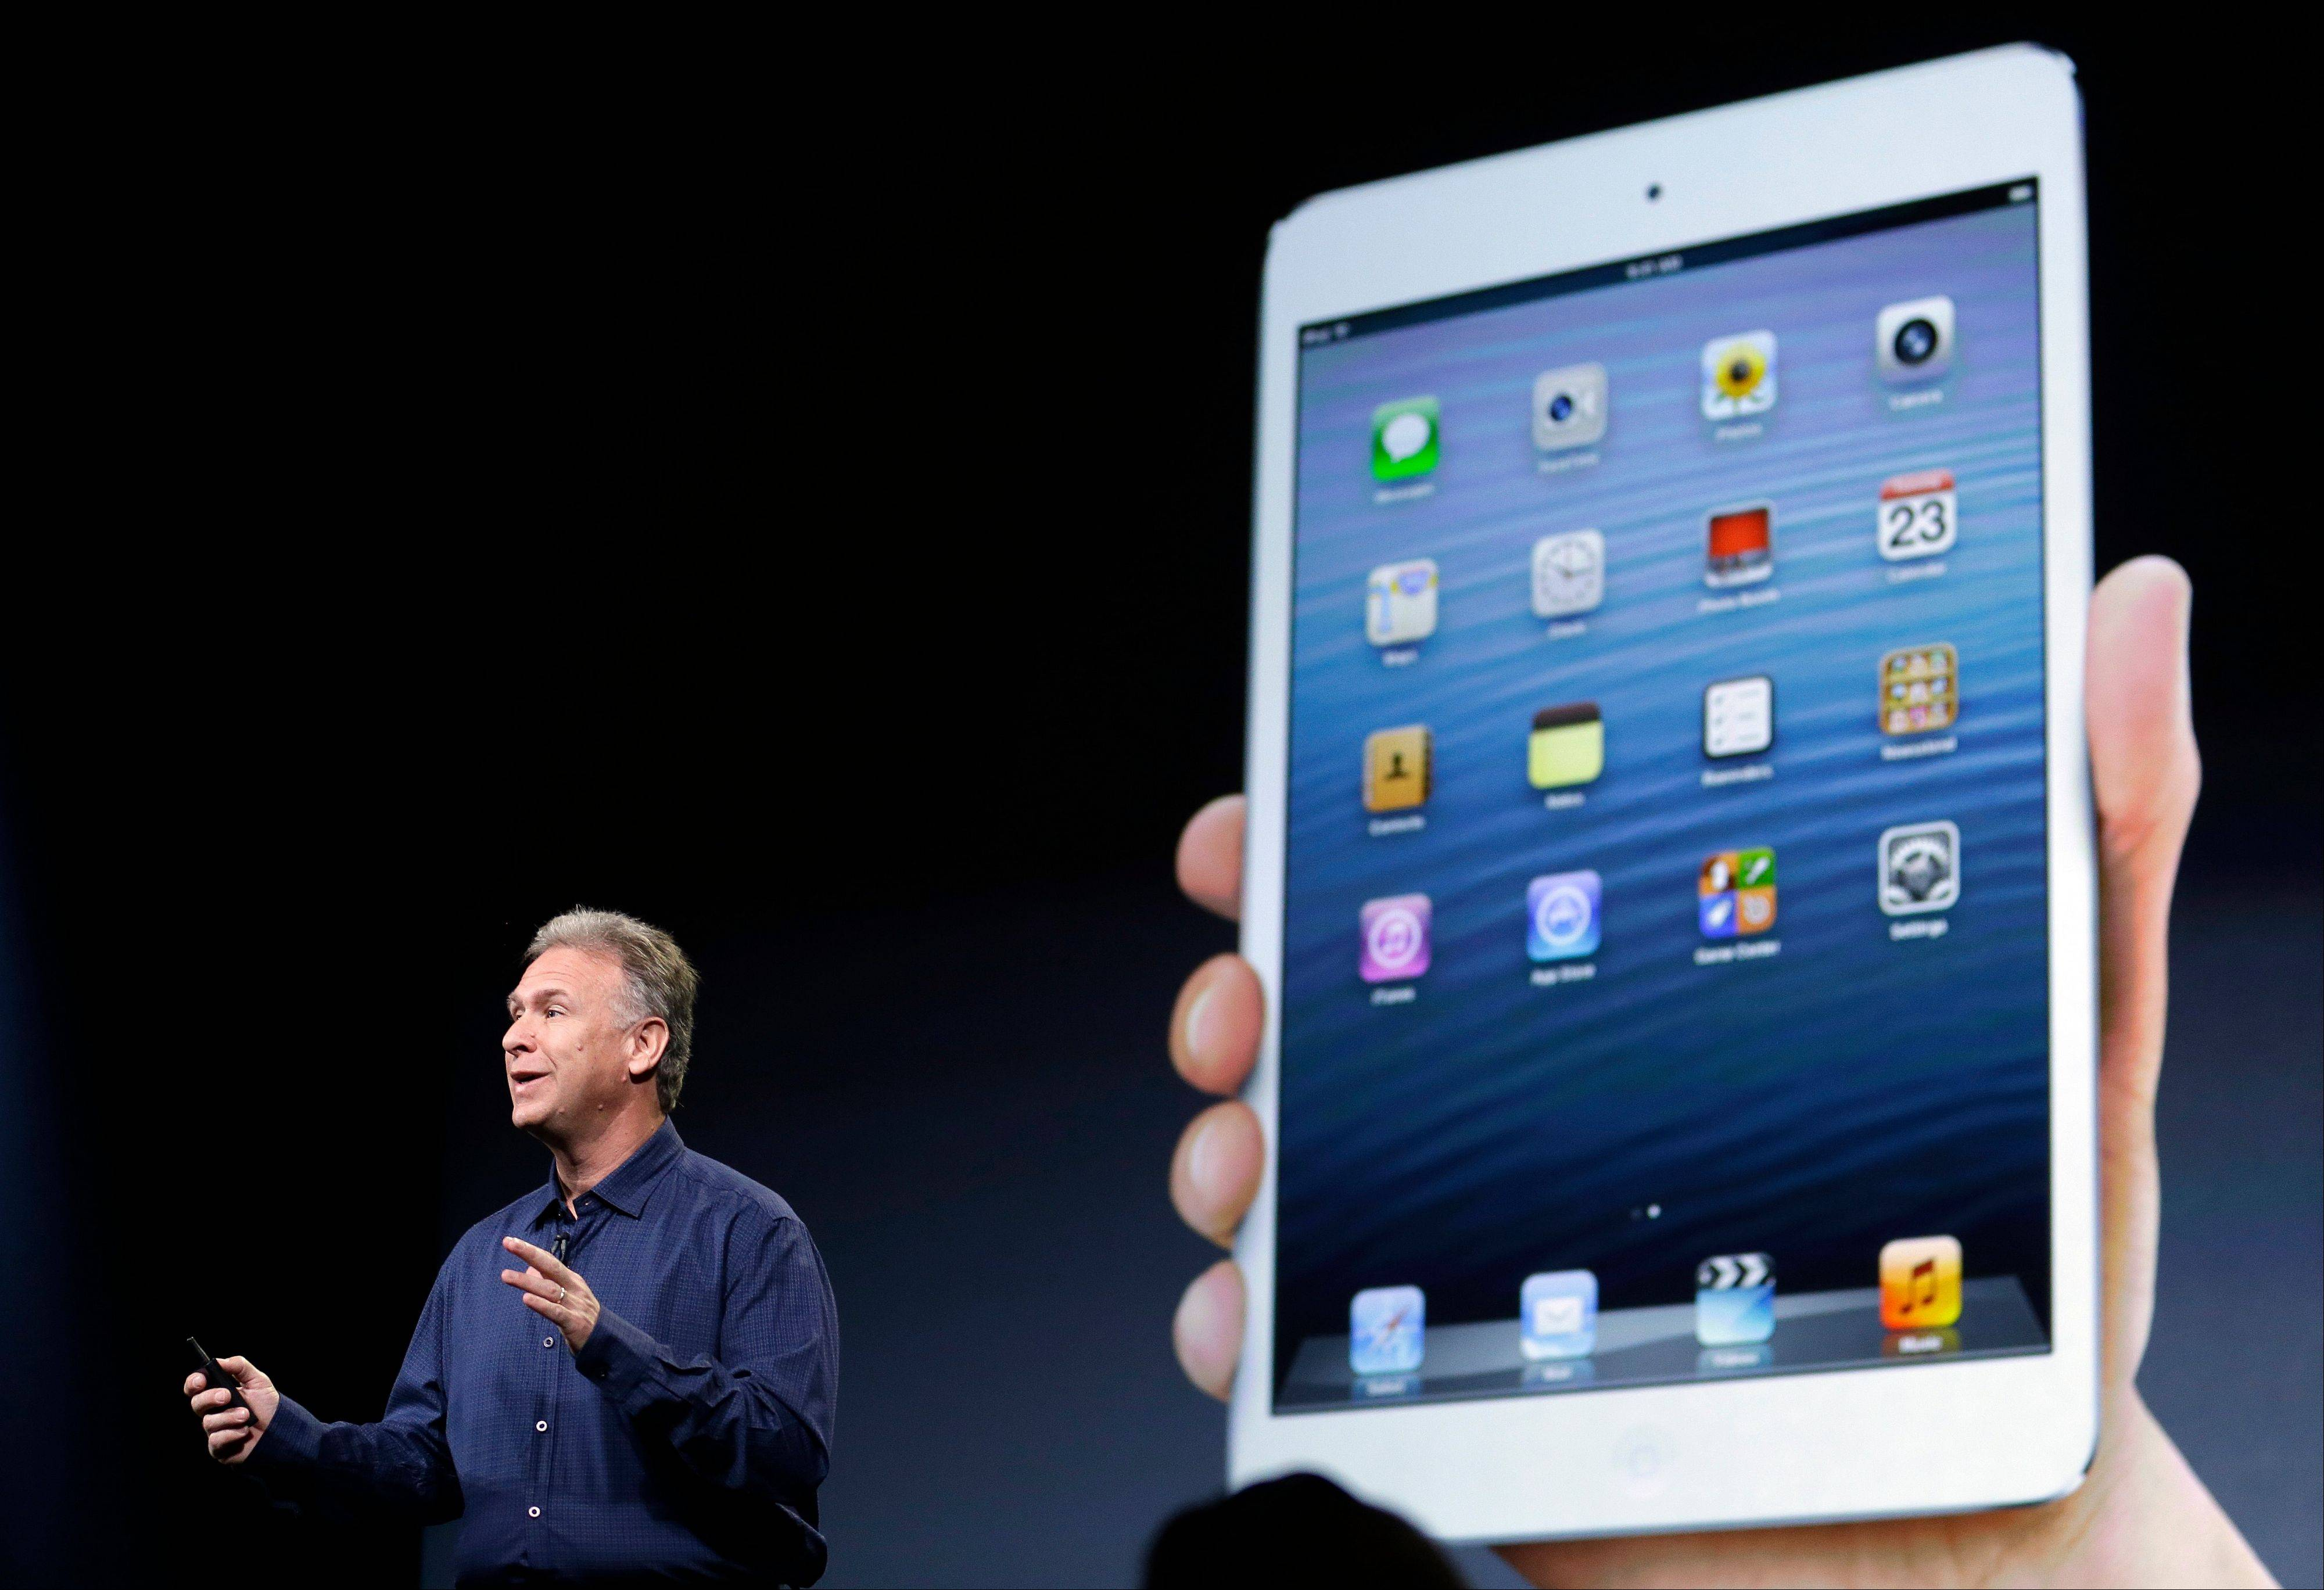 Phil Schiller, Apple's senior vice president of worldwide product marketing, introduces the iPad mini in San Jose, Calif., Tuesday. Apple Inc. is refusing to compete on price with its rivals in the tablet market. It's pricing its new, smaller iPad well above the competition.